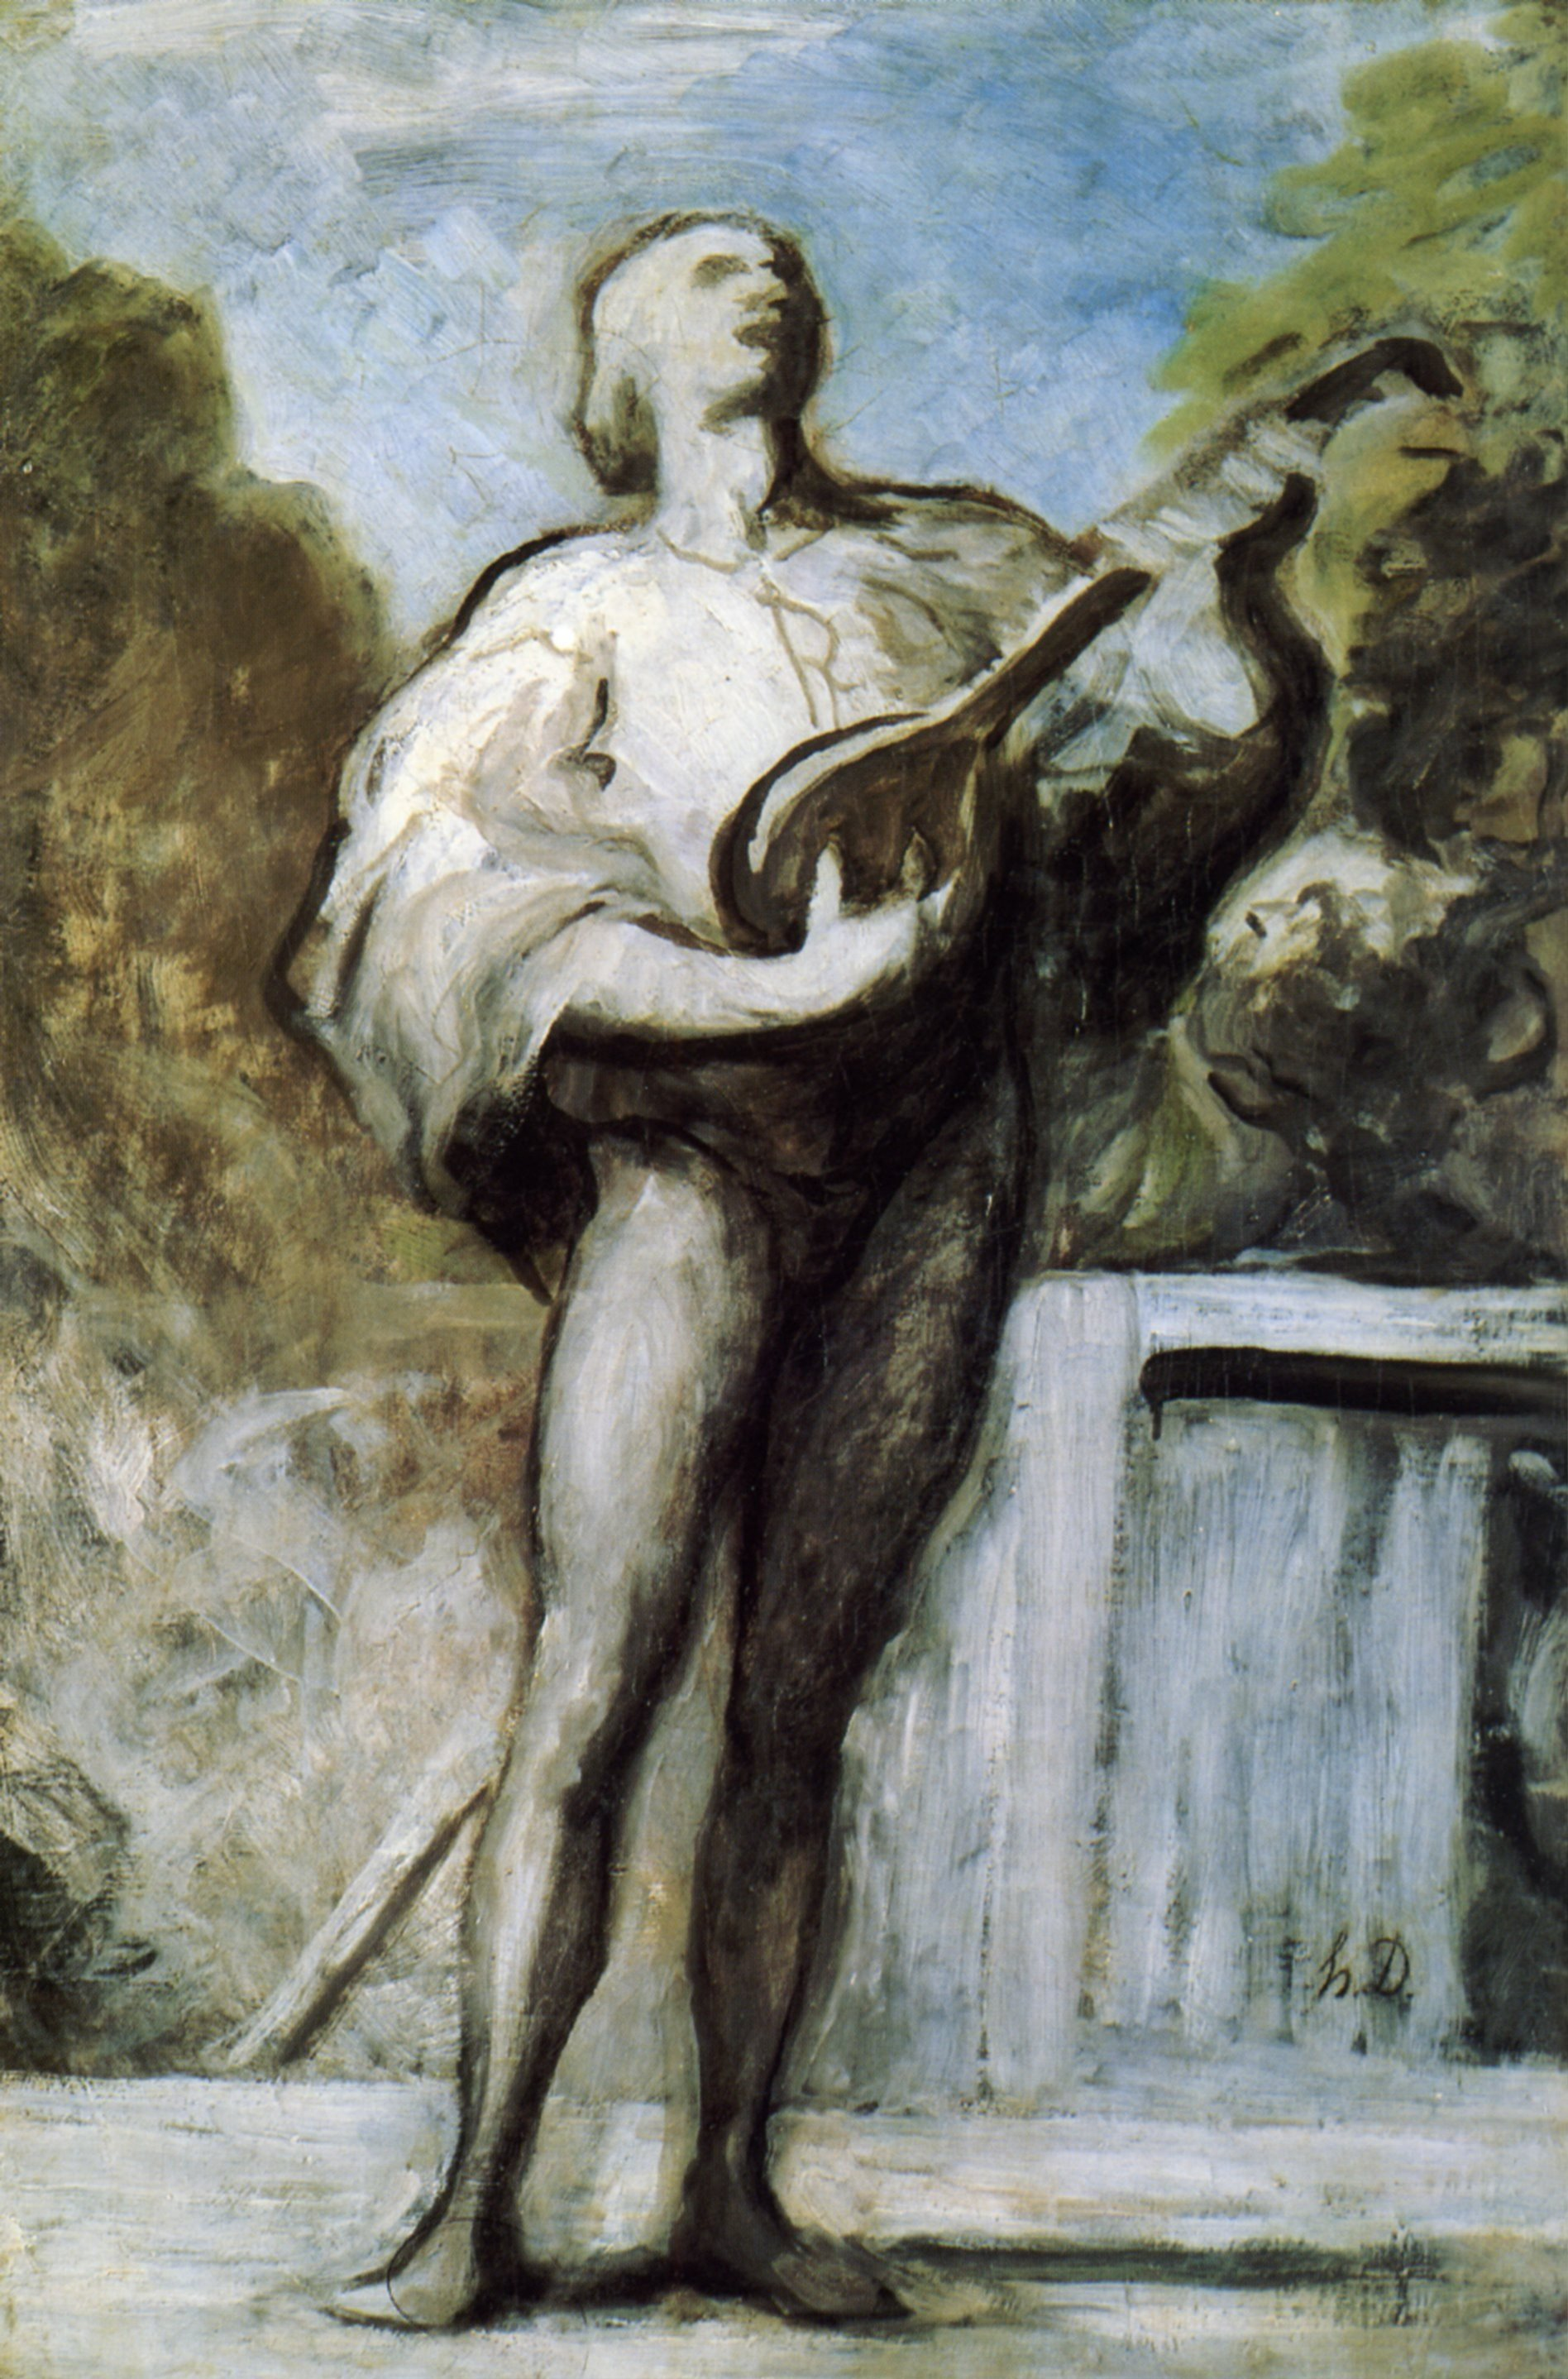 The Troubadour - Honore Daumier - WikiArt.org